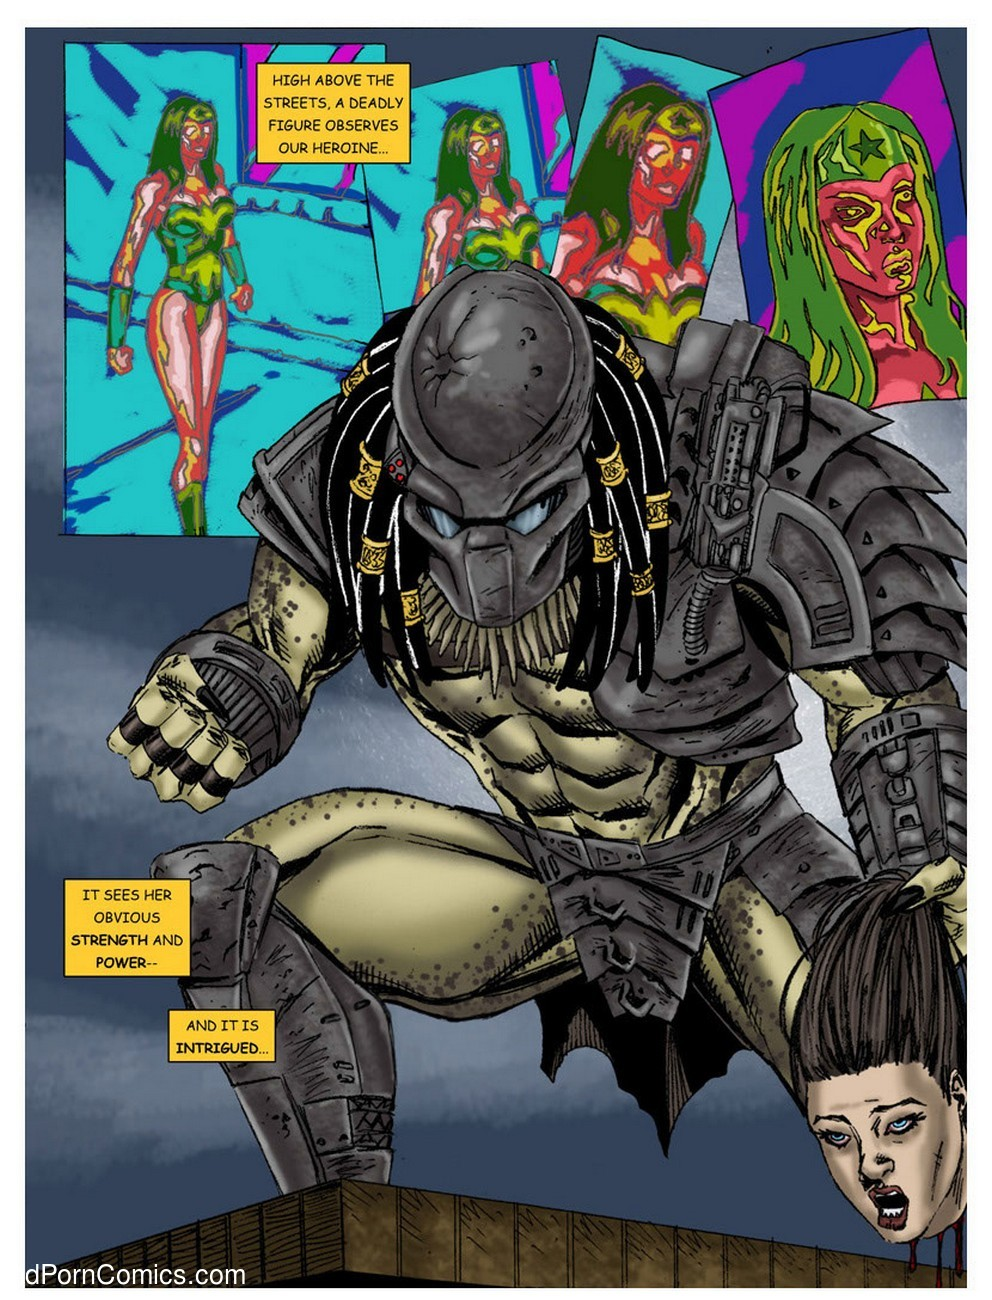 Wonder Woman - In The Clutches Of The Predator 1 4 free sex comic